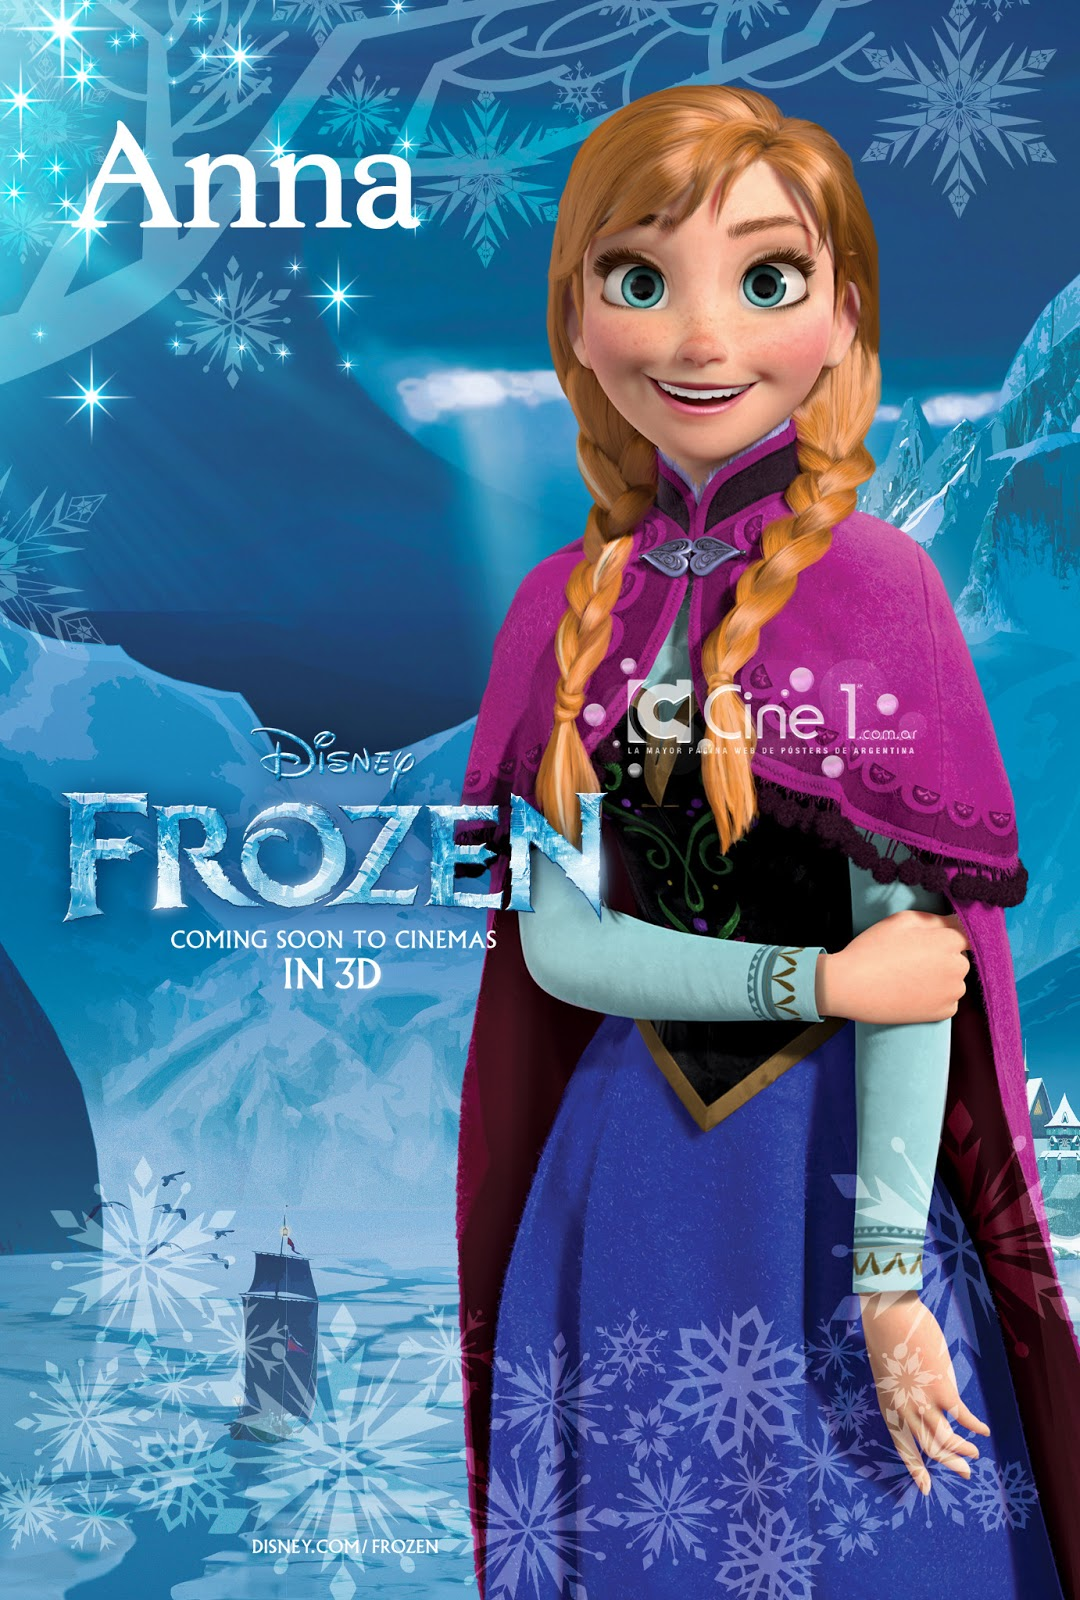 Disney Princess Frozen Posters